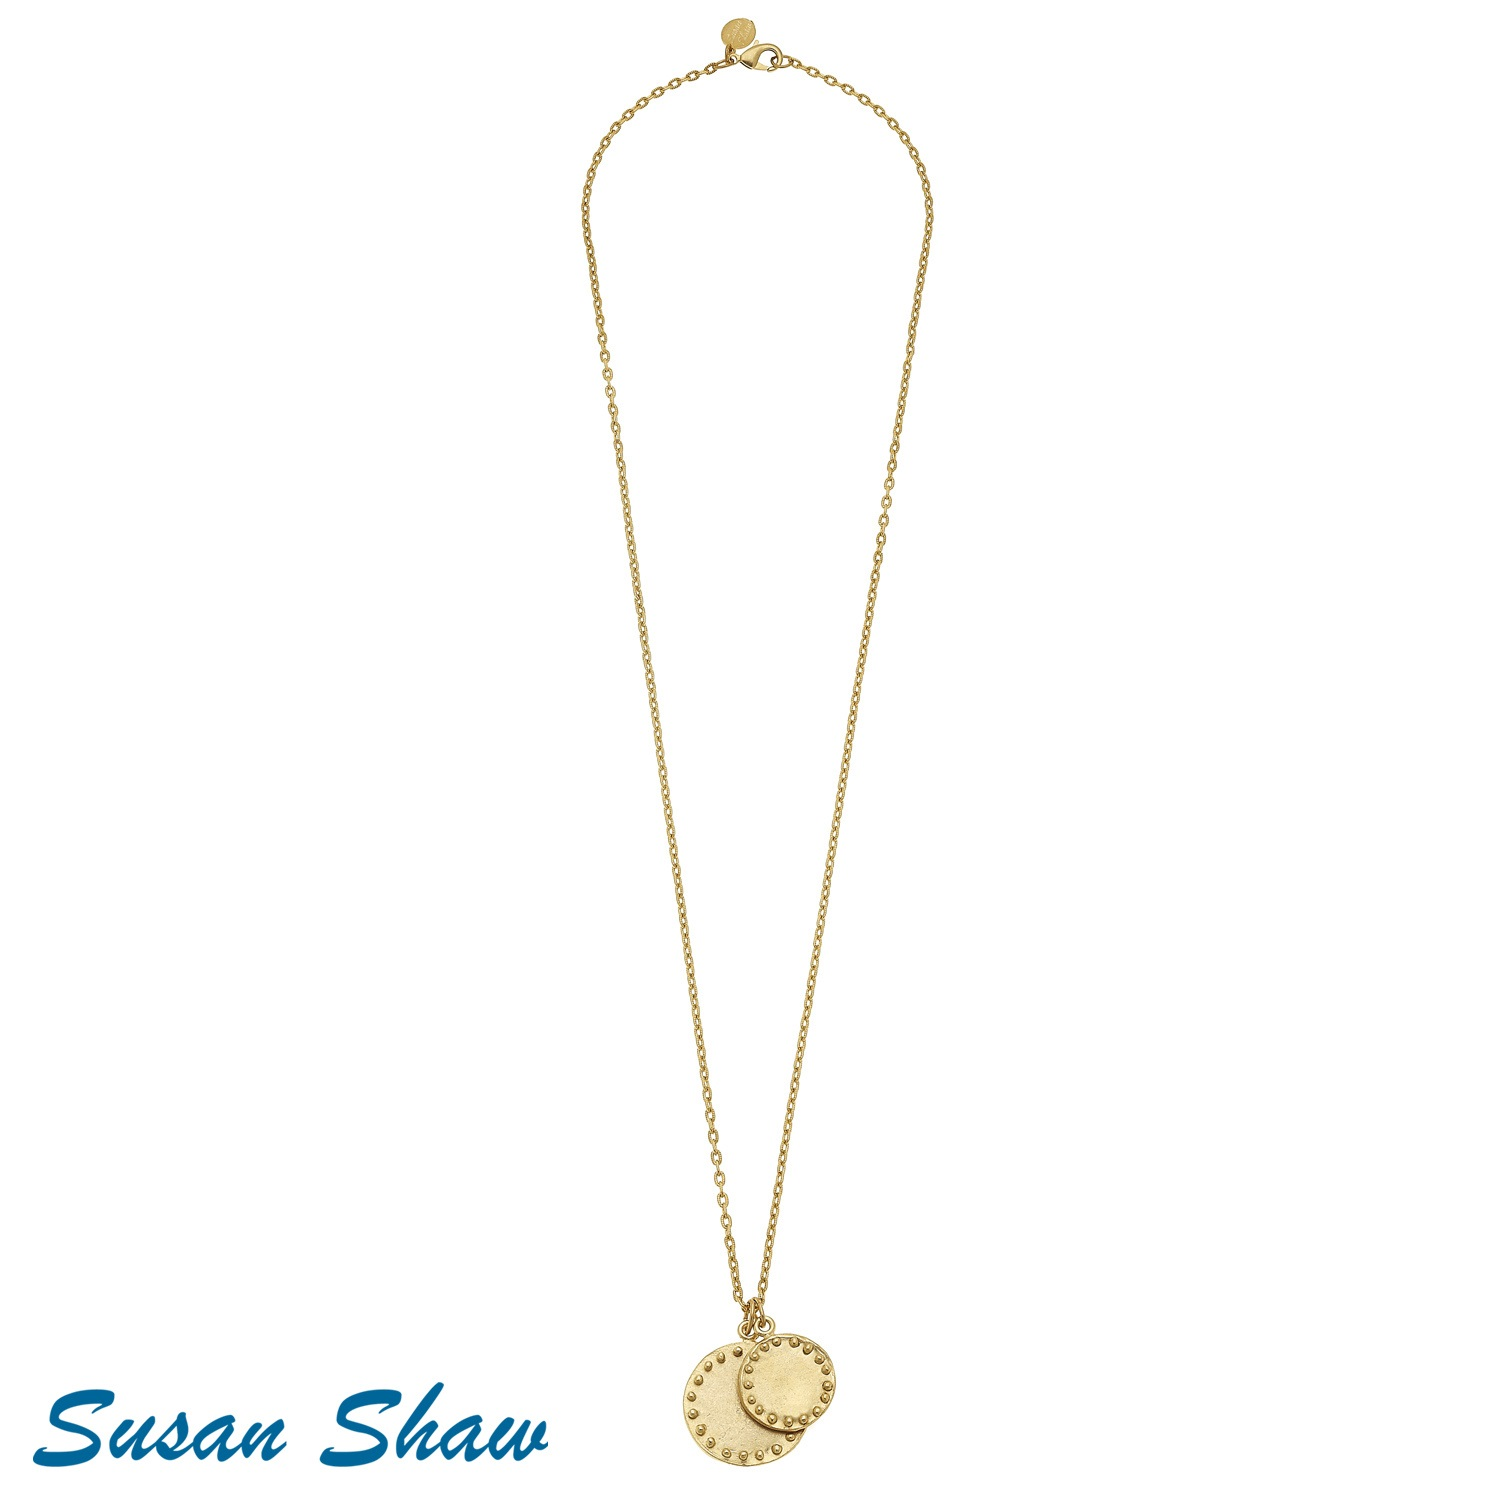 "SUSAN SHAW 30"" GOLD DOUBLE CIRCLE WITH DOTS CHAIN NECKLACE"